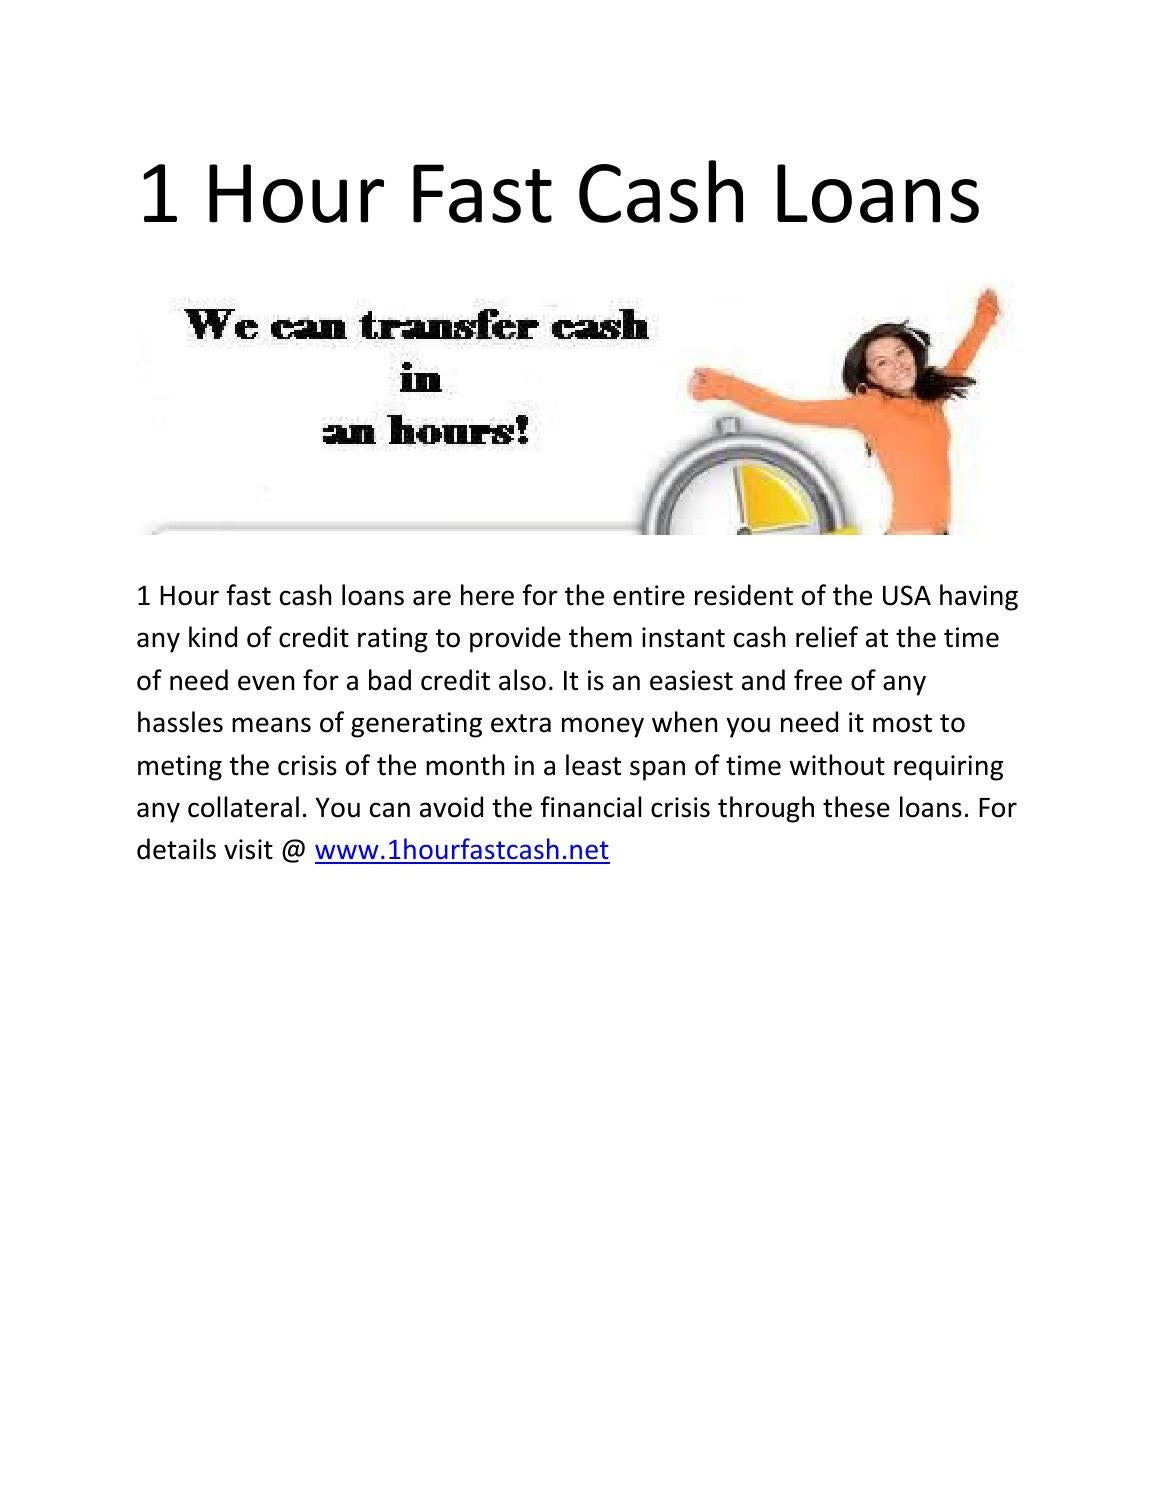 cash in 1 hour - 2